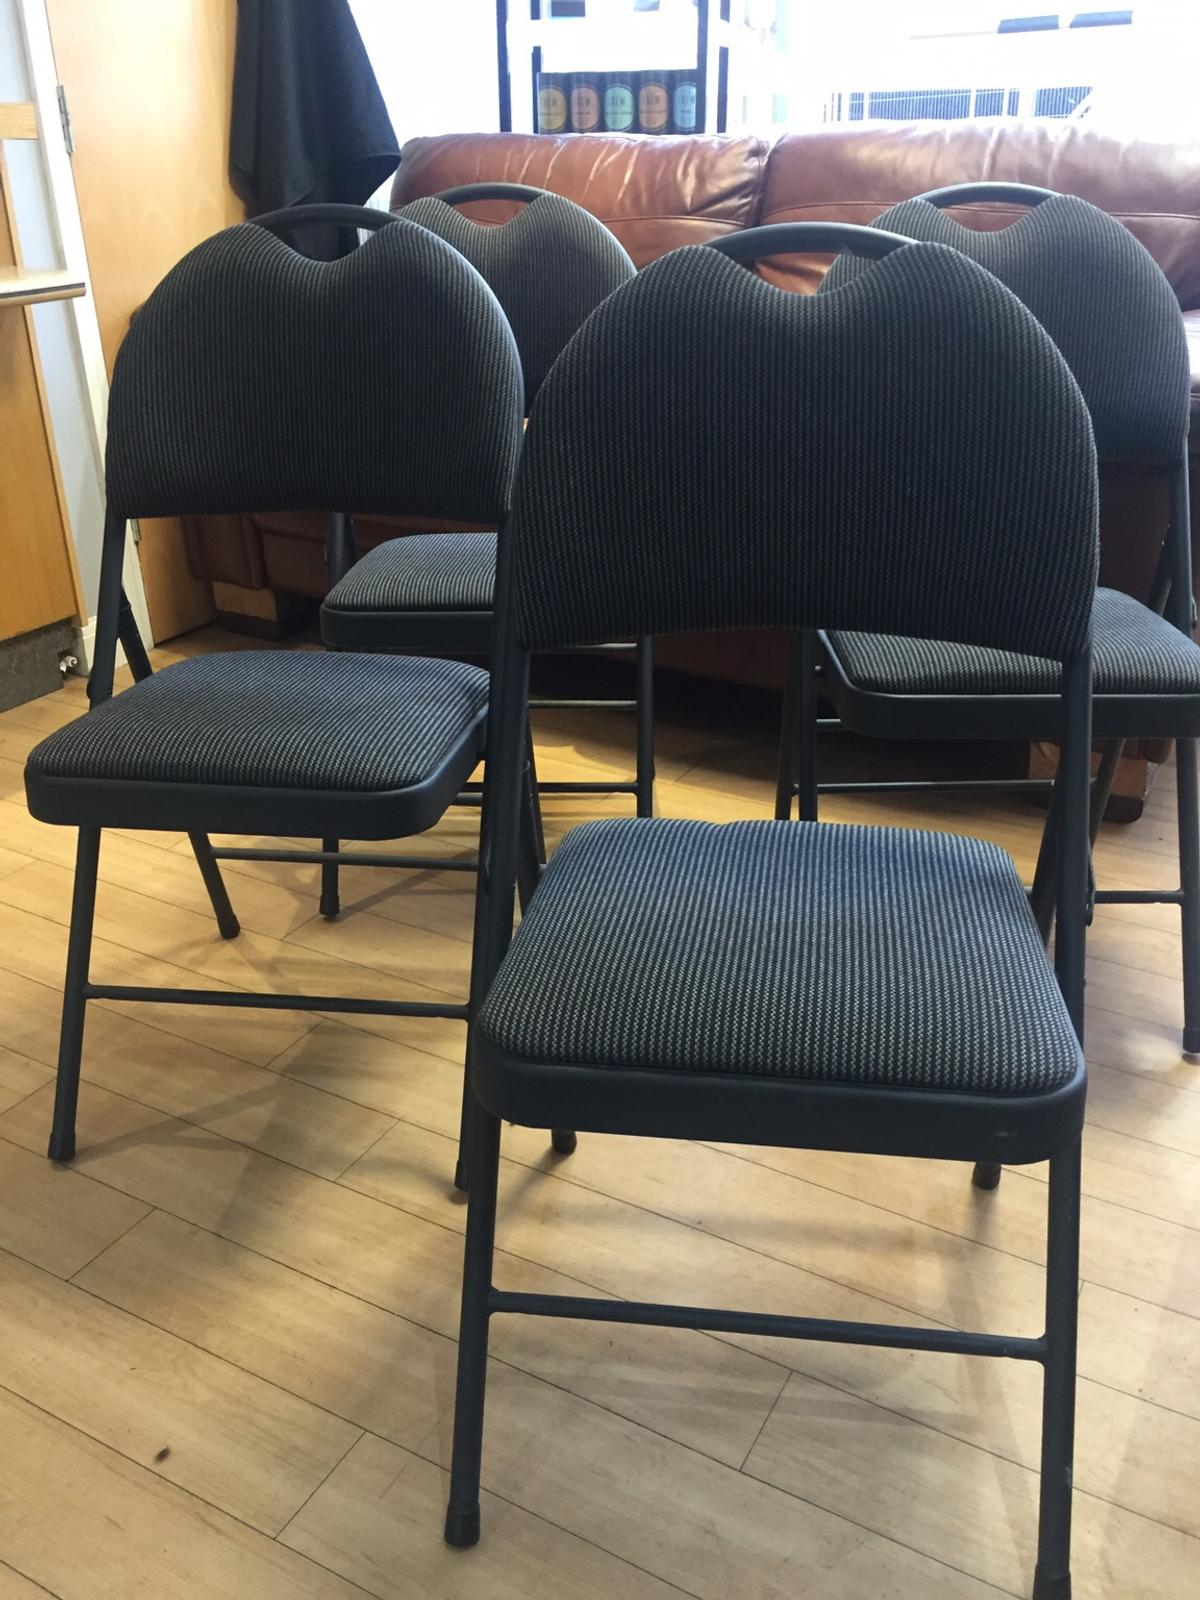 Set Of 4 Padded Folding Chairs Costco In S66 Rotherham